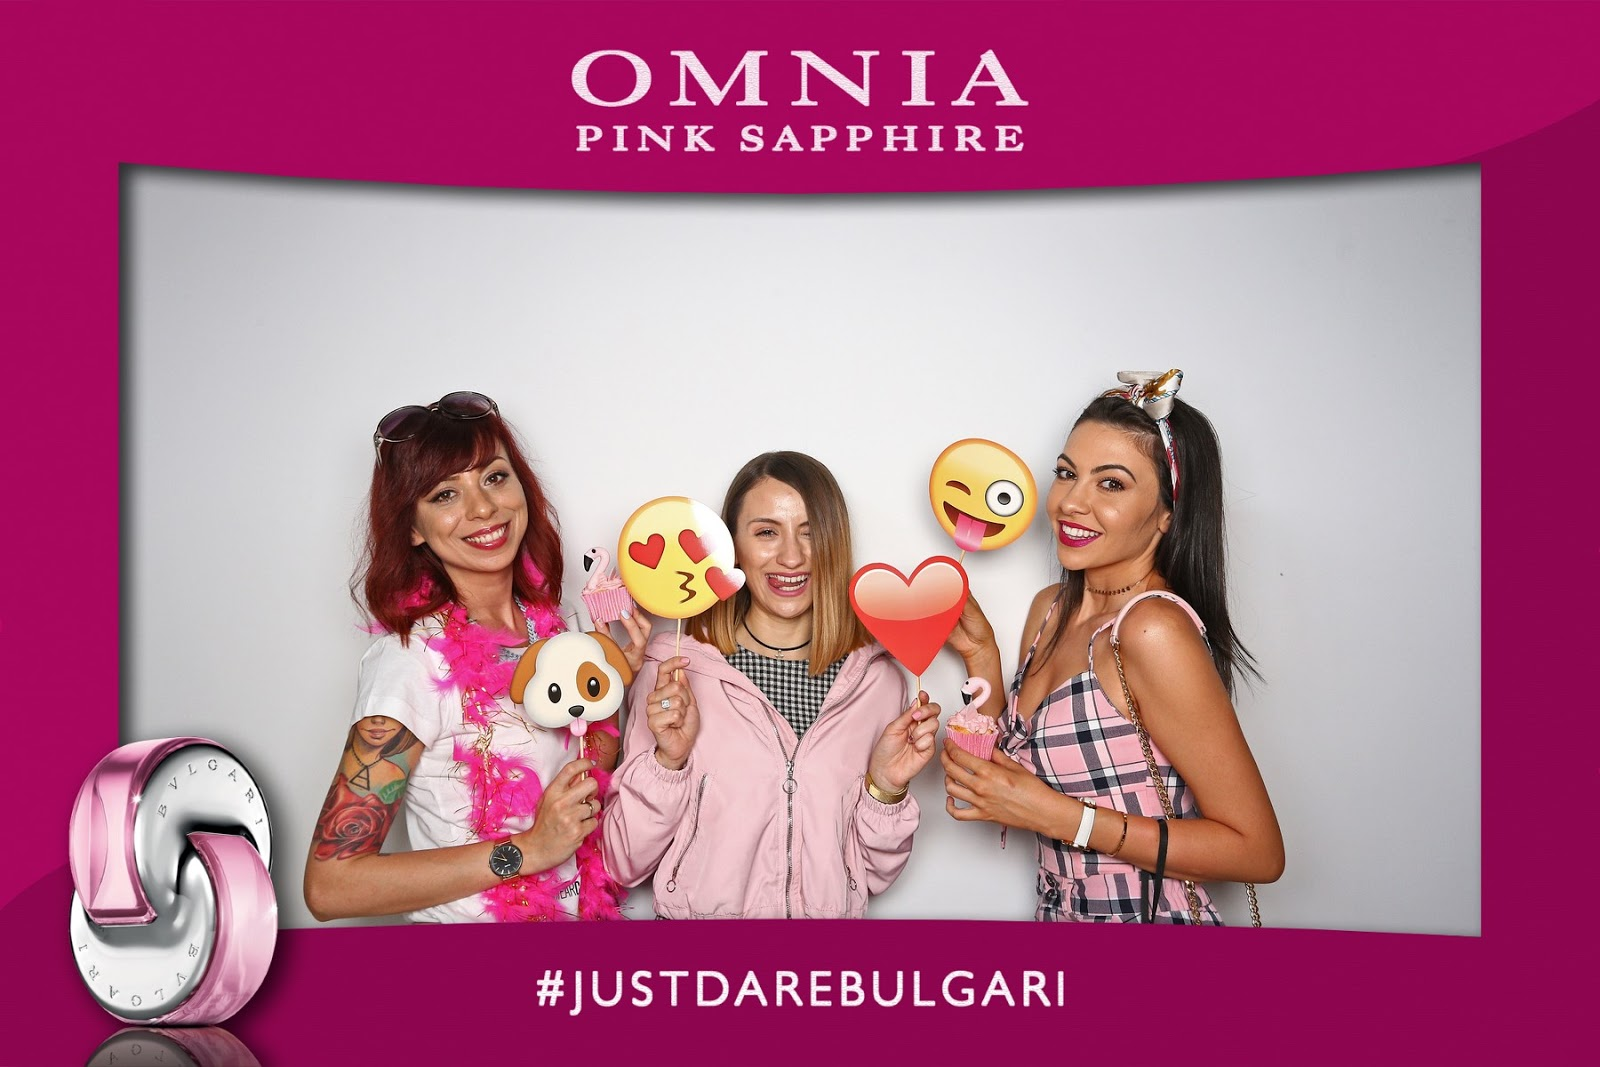 Omnia Pink Sapphire event